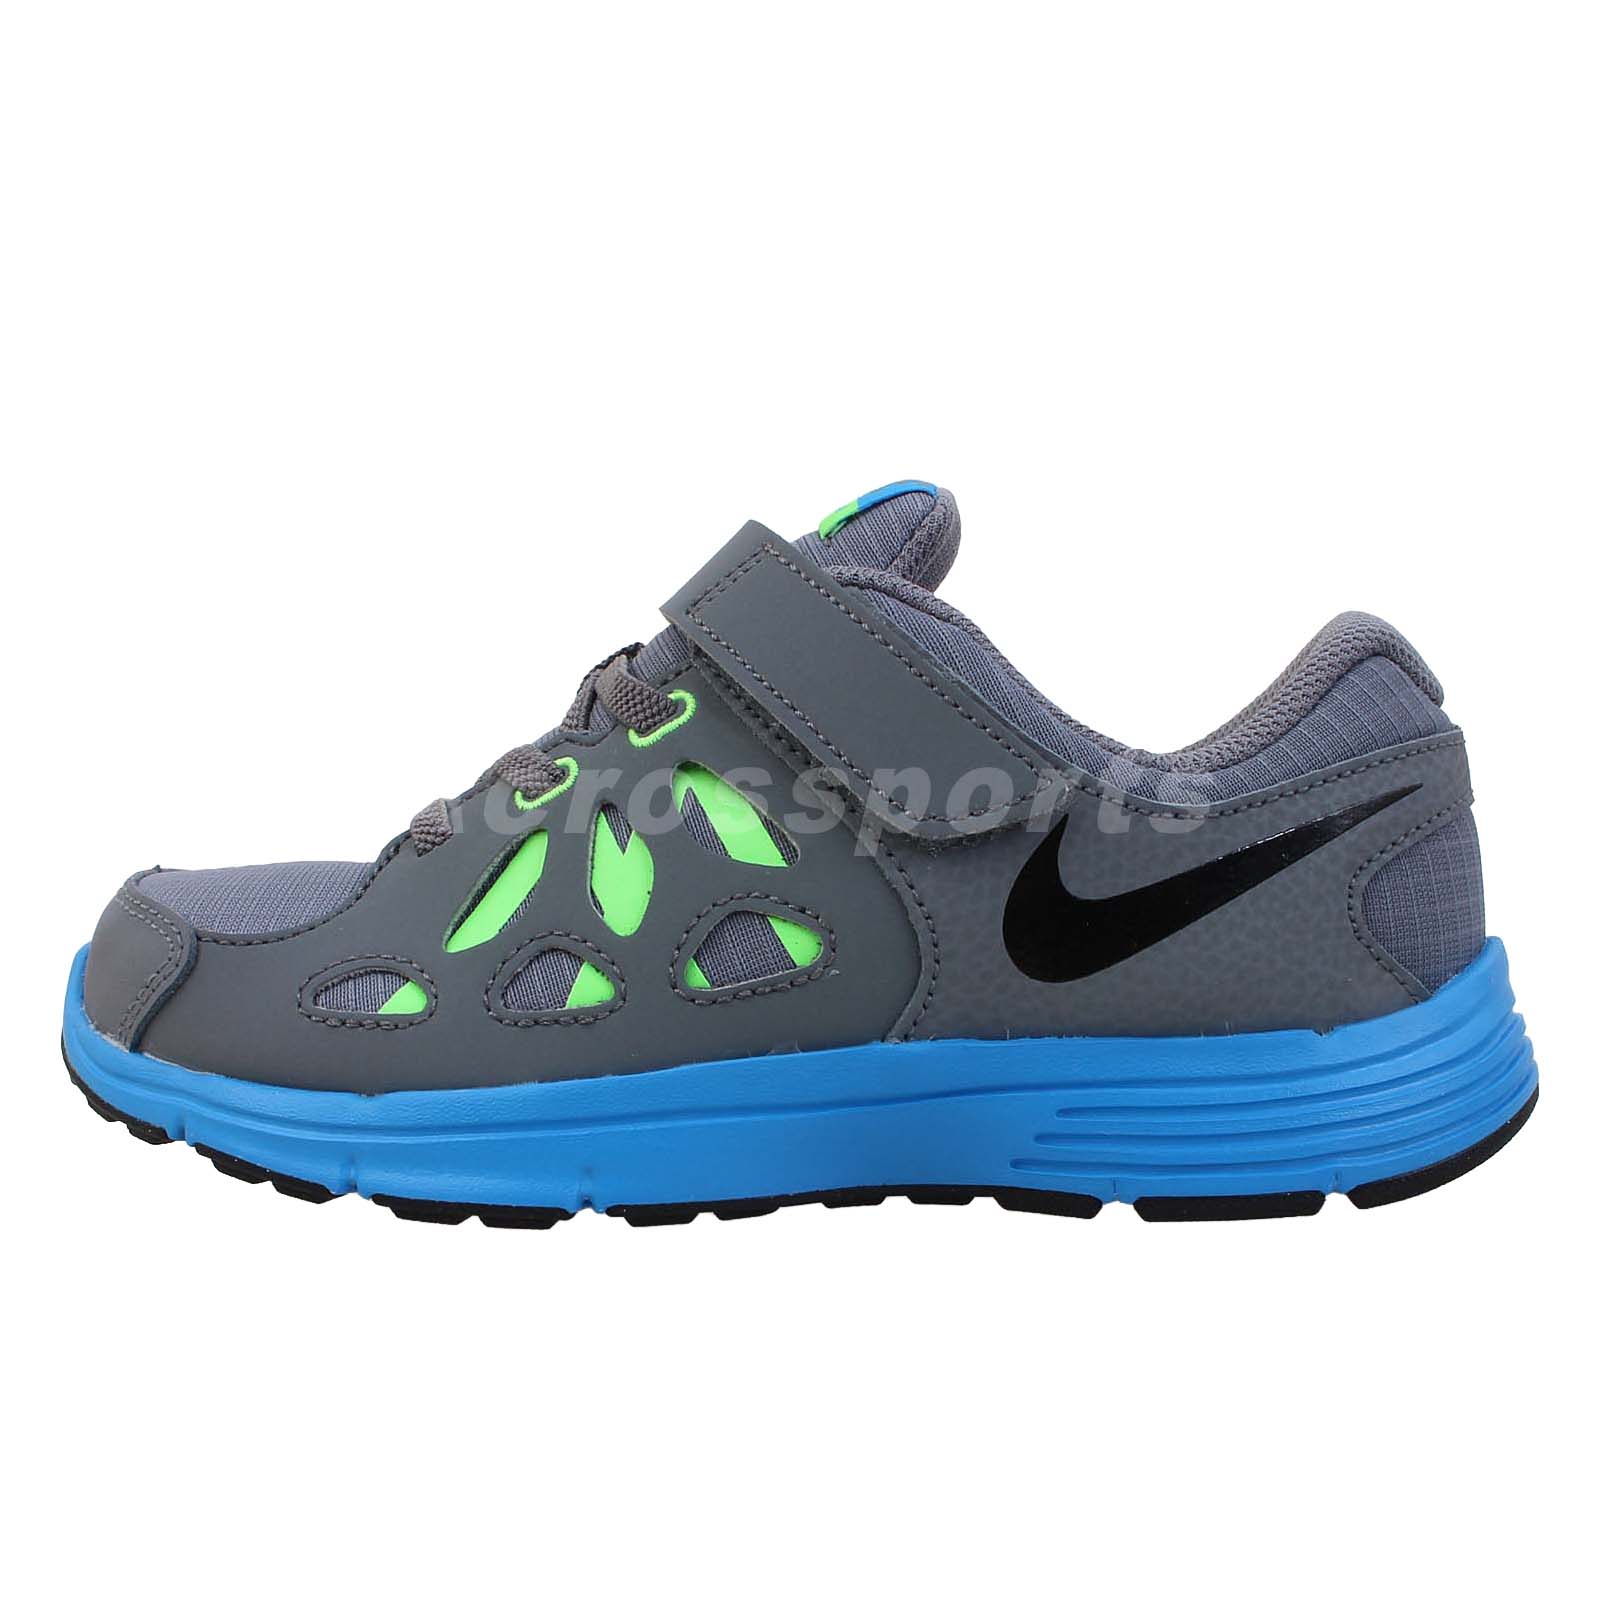 Nike Velcro Sneakers For Kids nike velcro sneakers for kids Nike Shoes for Kids at Macy s come in a variety of styles. Keep them moving with kids' sneakers and sandals by Nike Find great deals on a wide variety of Nike shoes for children.